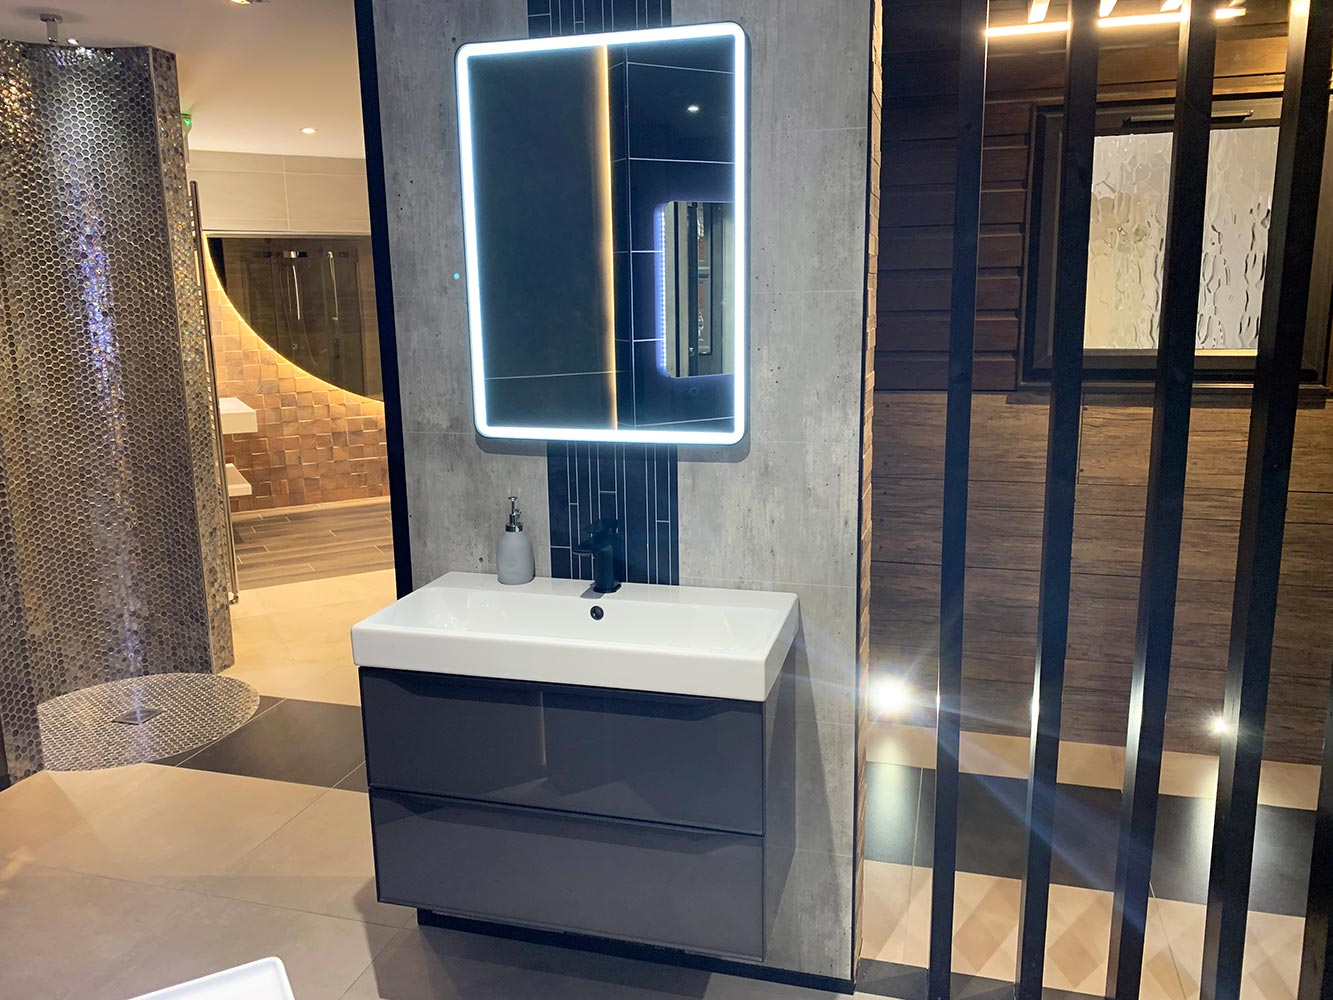 Bathroom Showroom Aberdeen: Bathroom Gallery 7, Photo 9